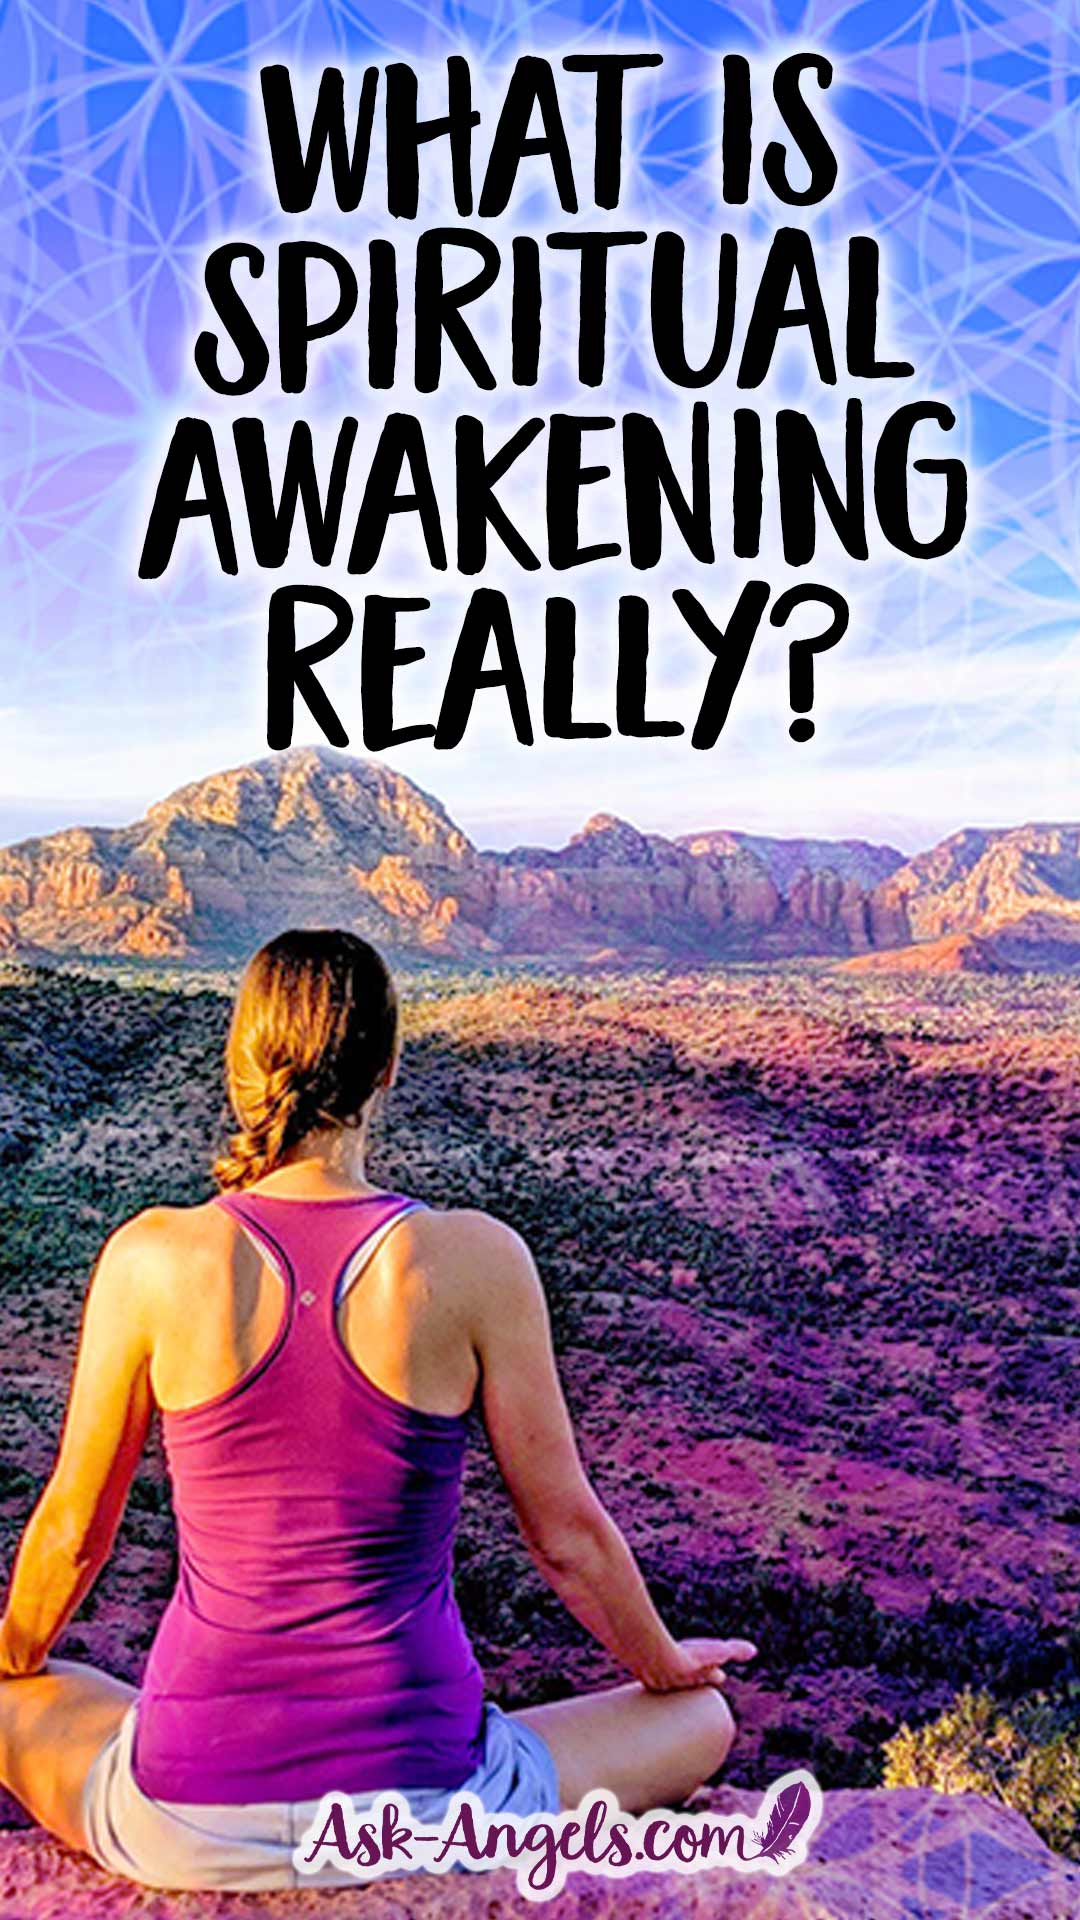 What is spiritual awakening really?